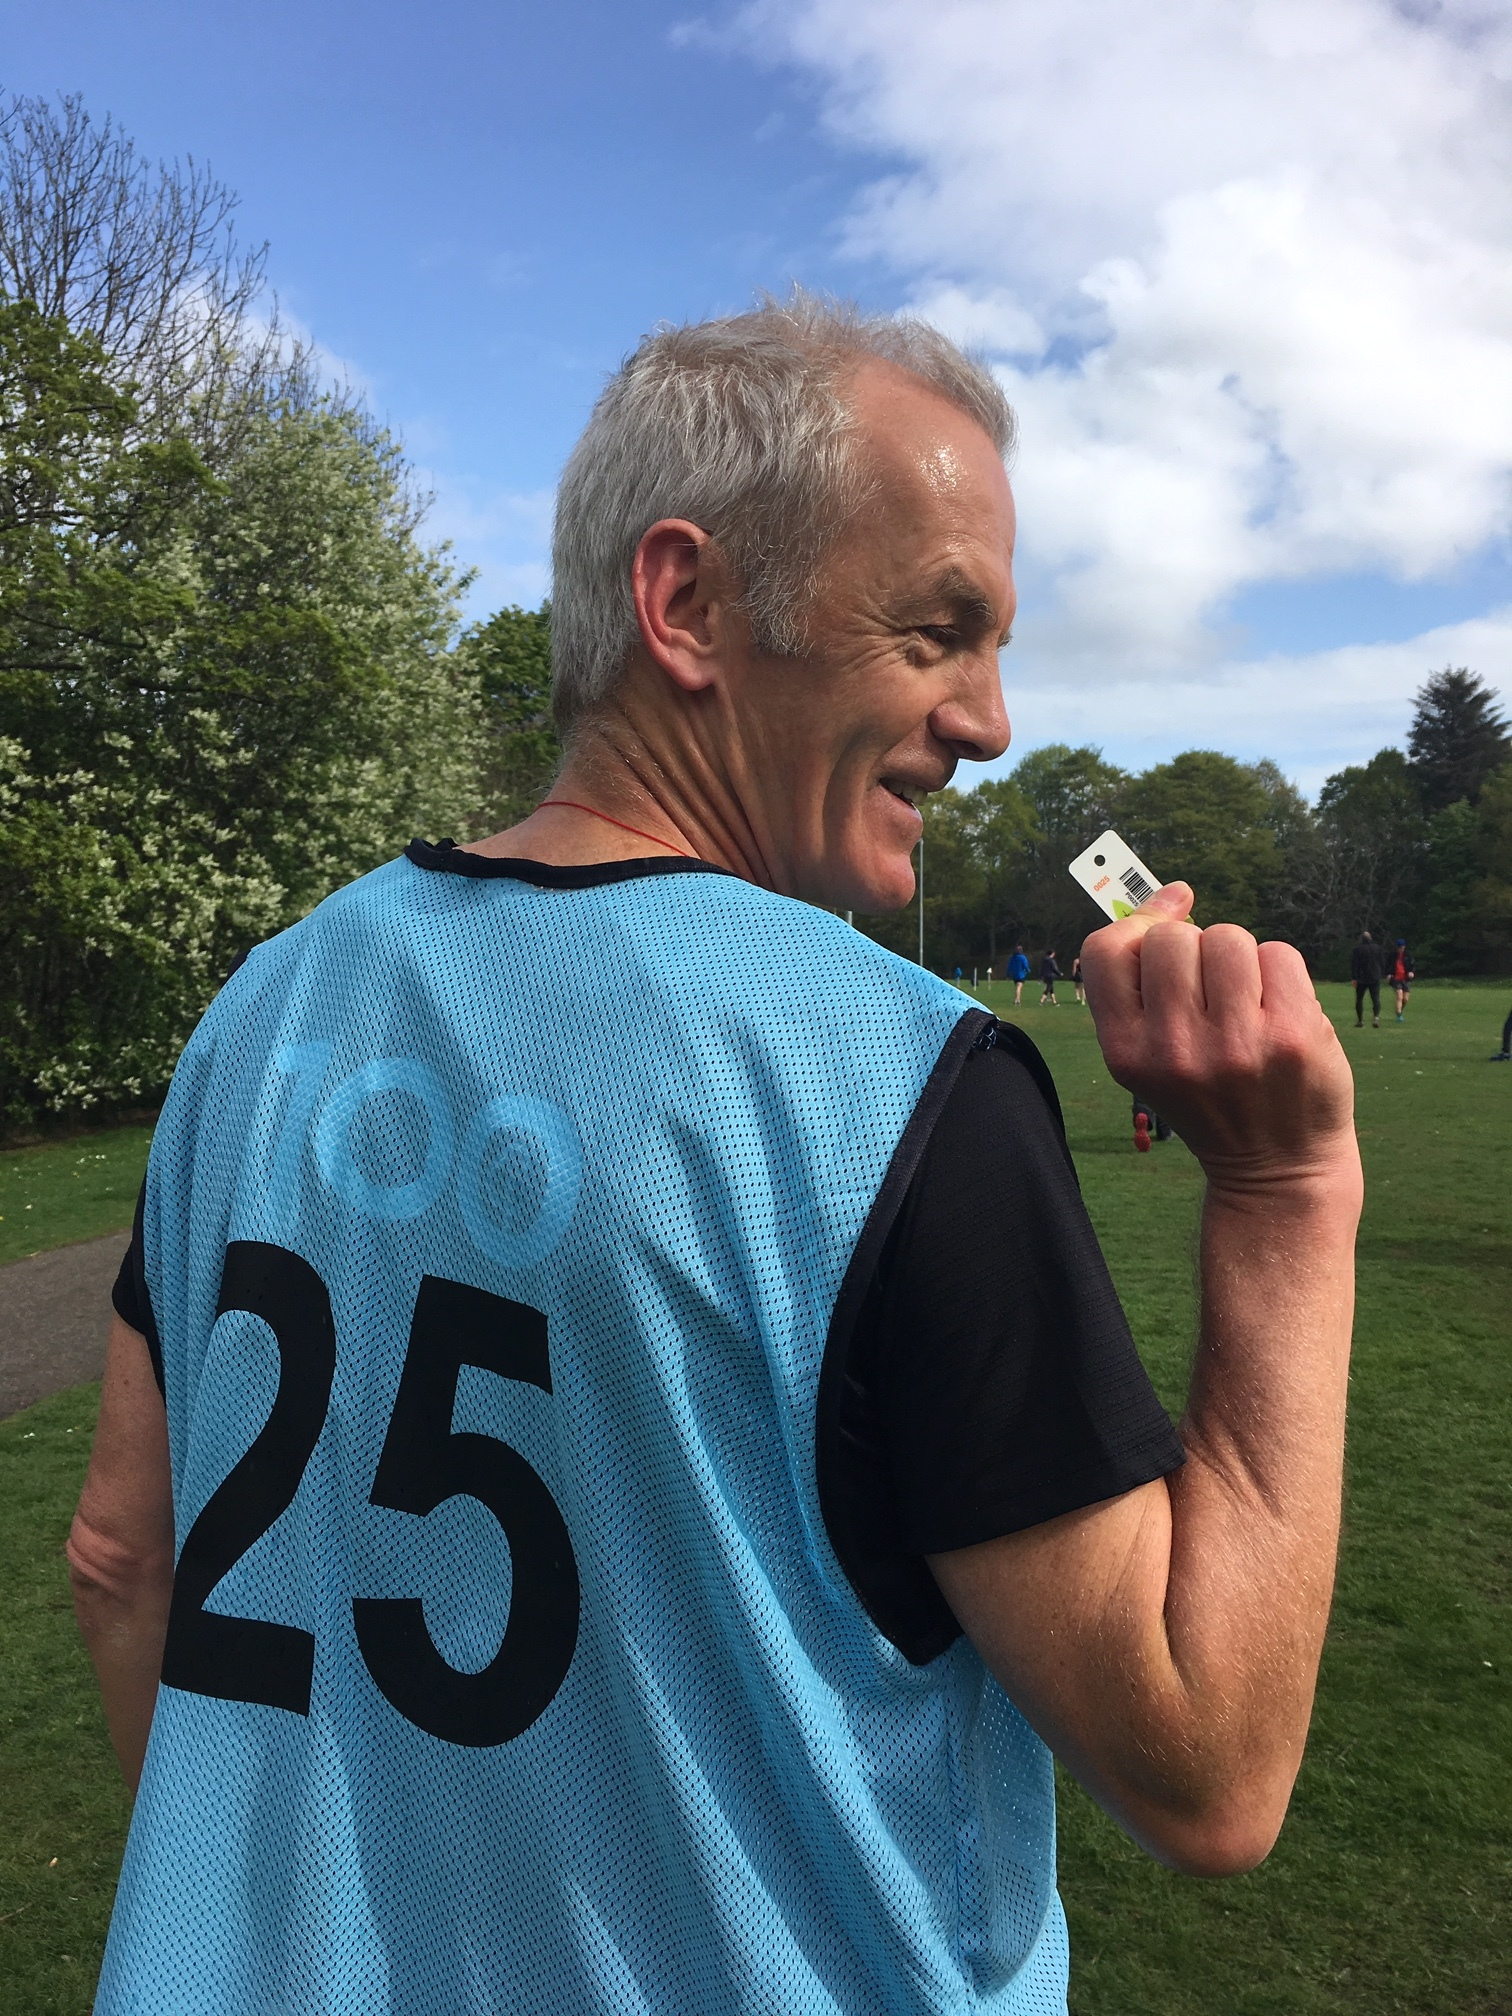 Neil at parkrun